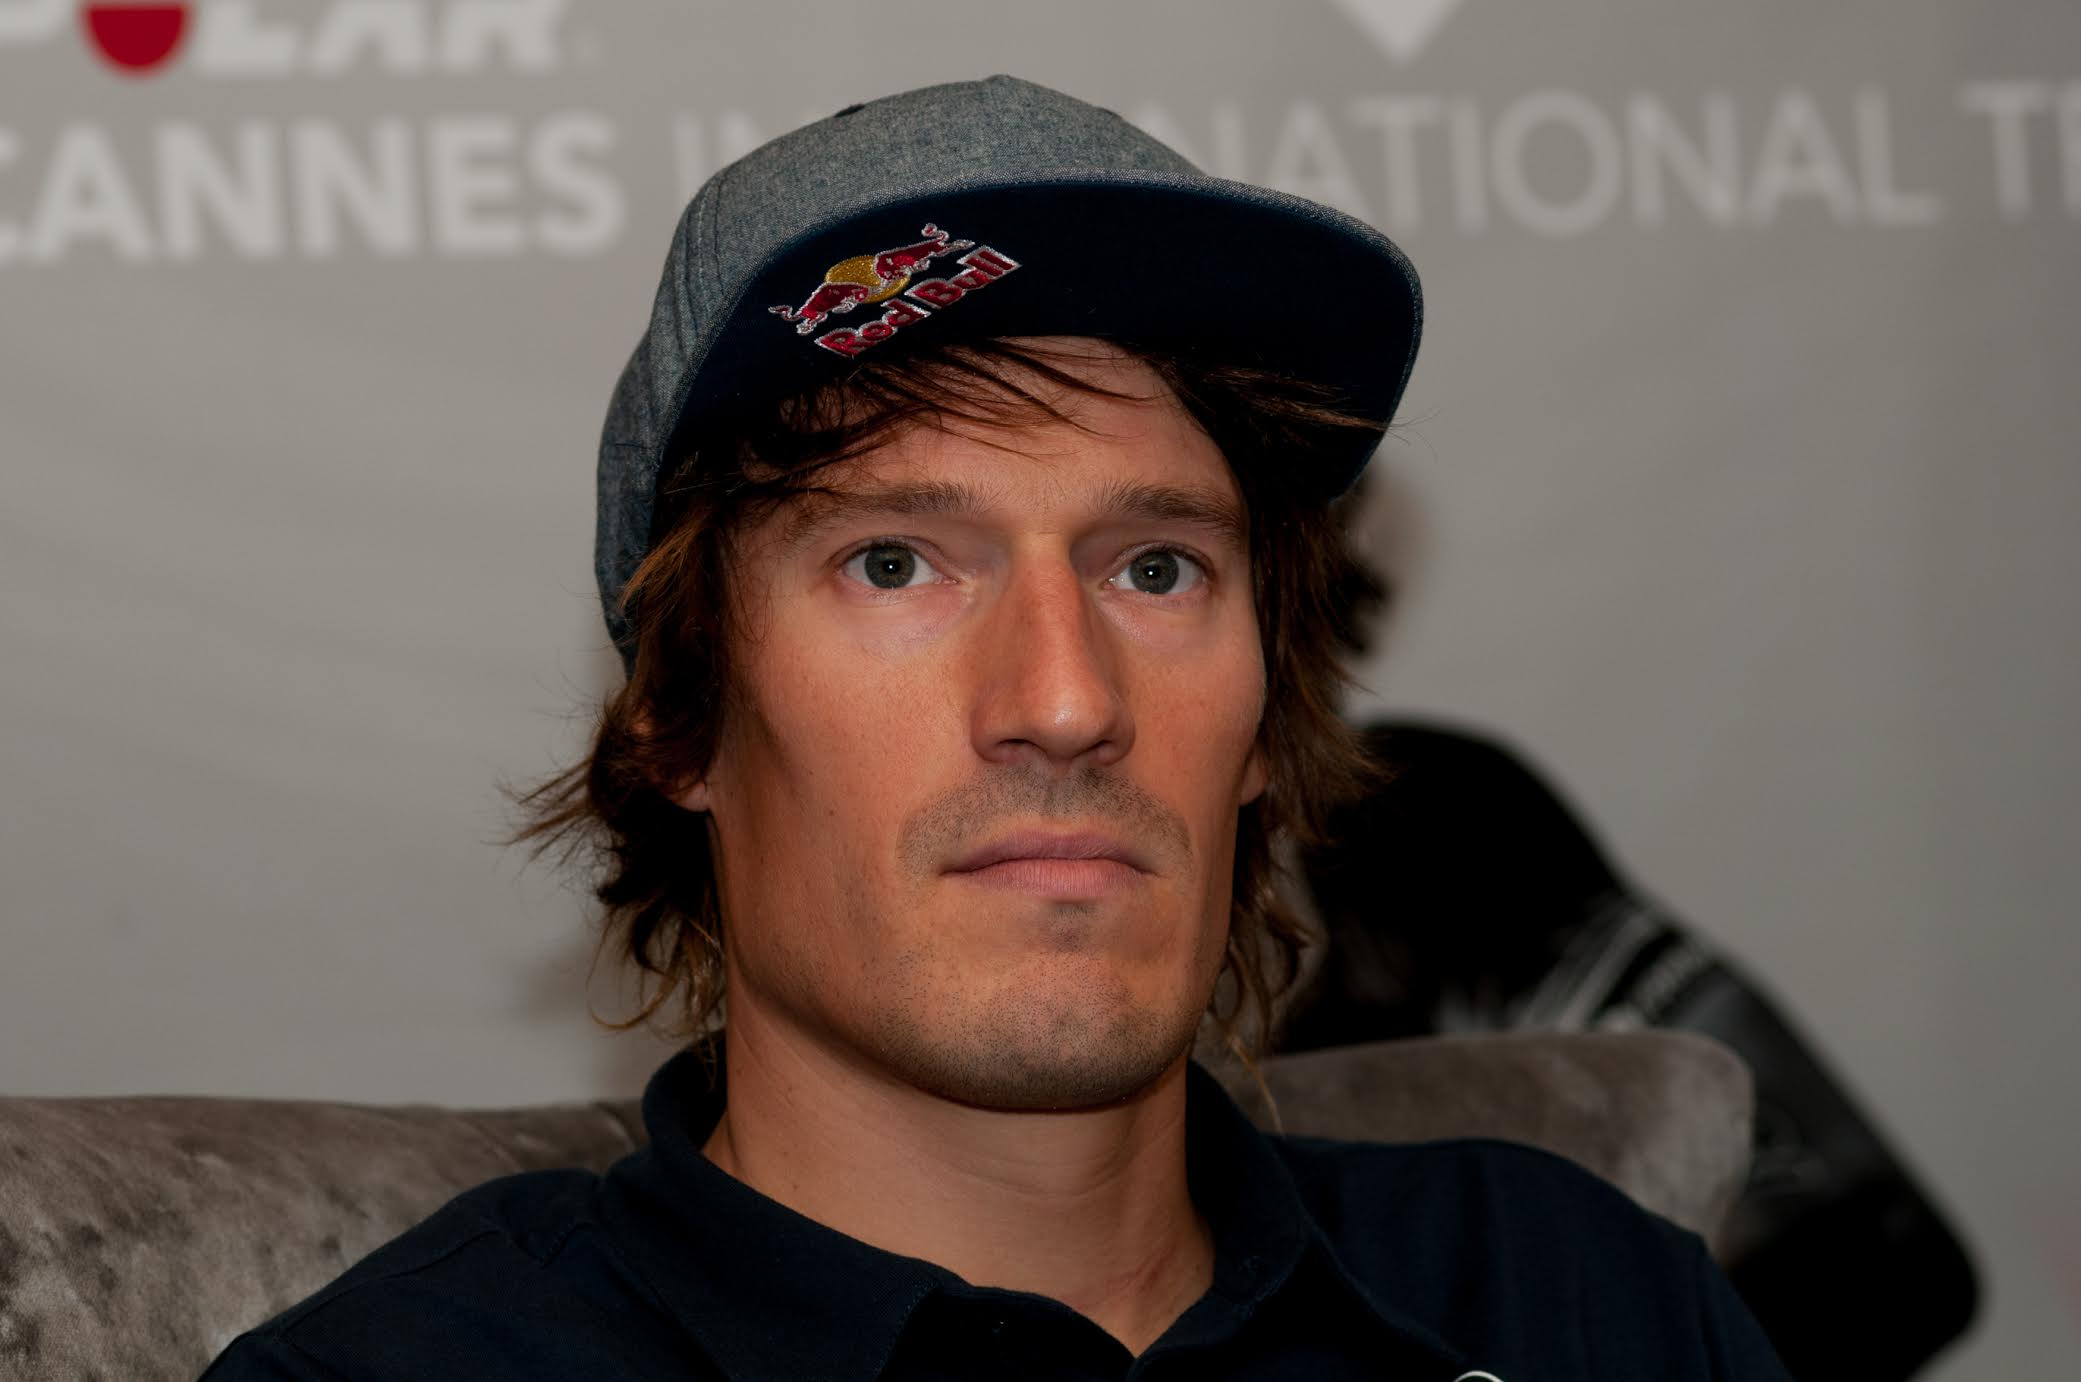 Sebastian Kienle is één van de toppers aan de start in Cannes (foto: Mario Vanacker)